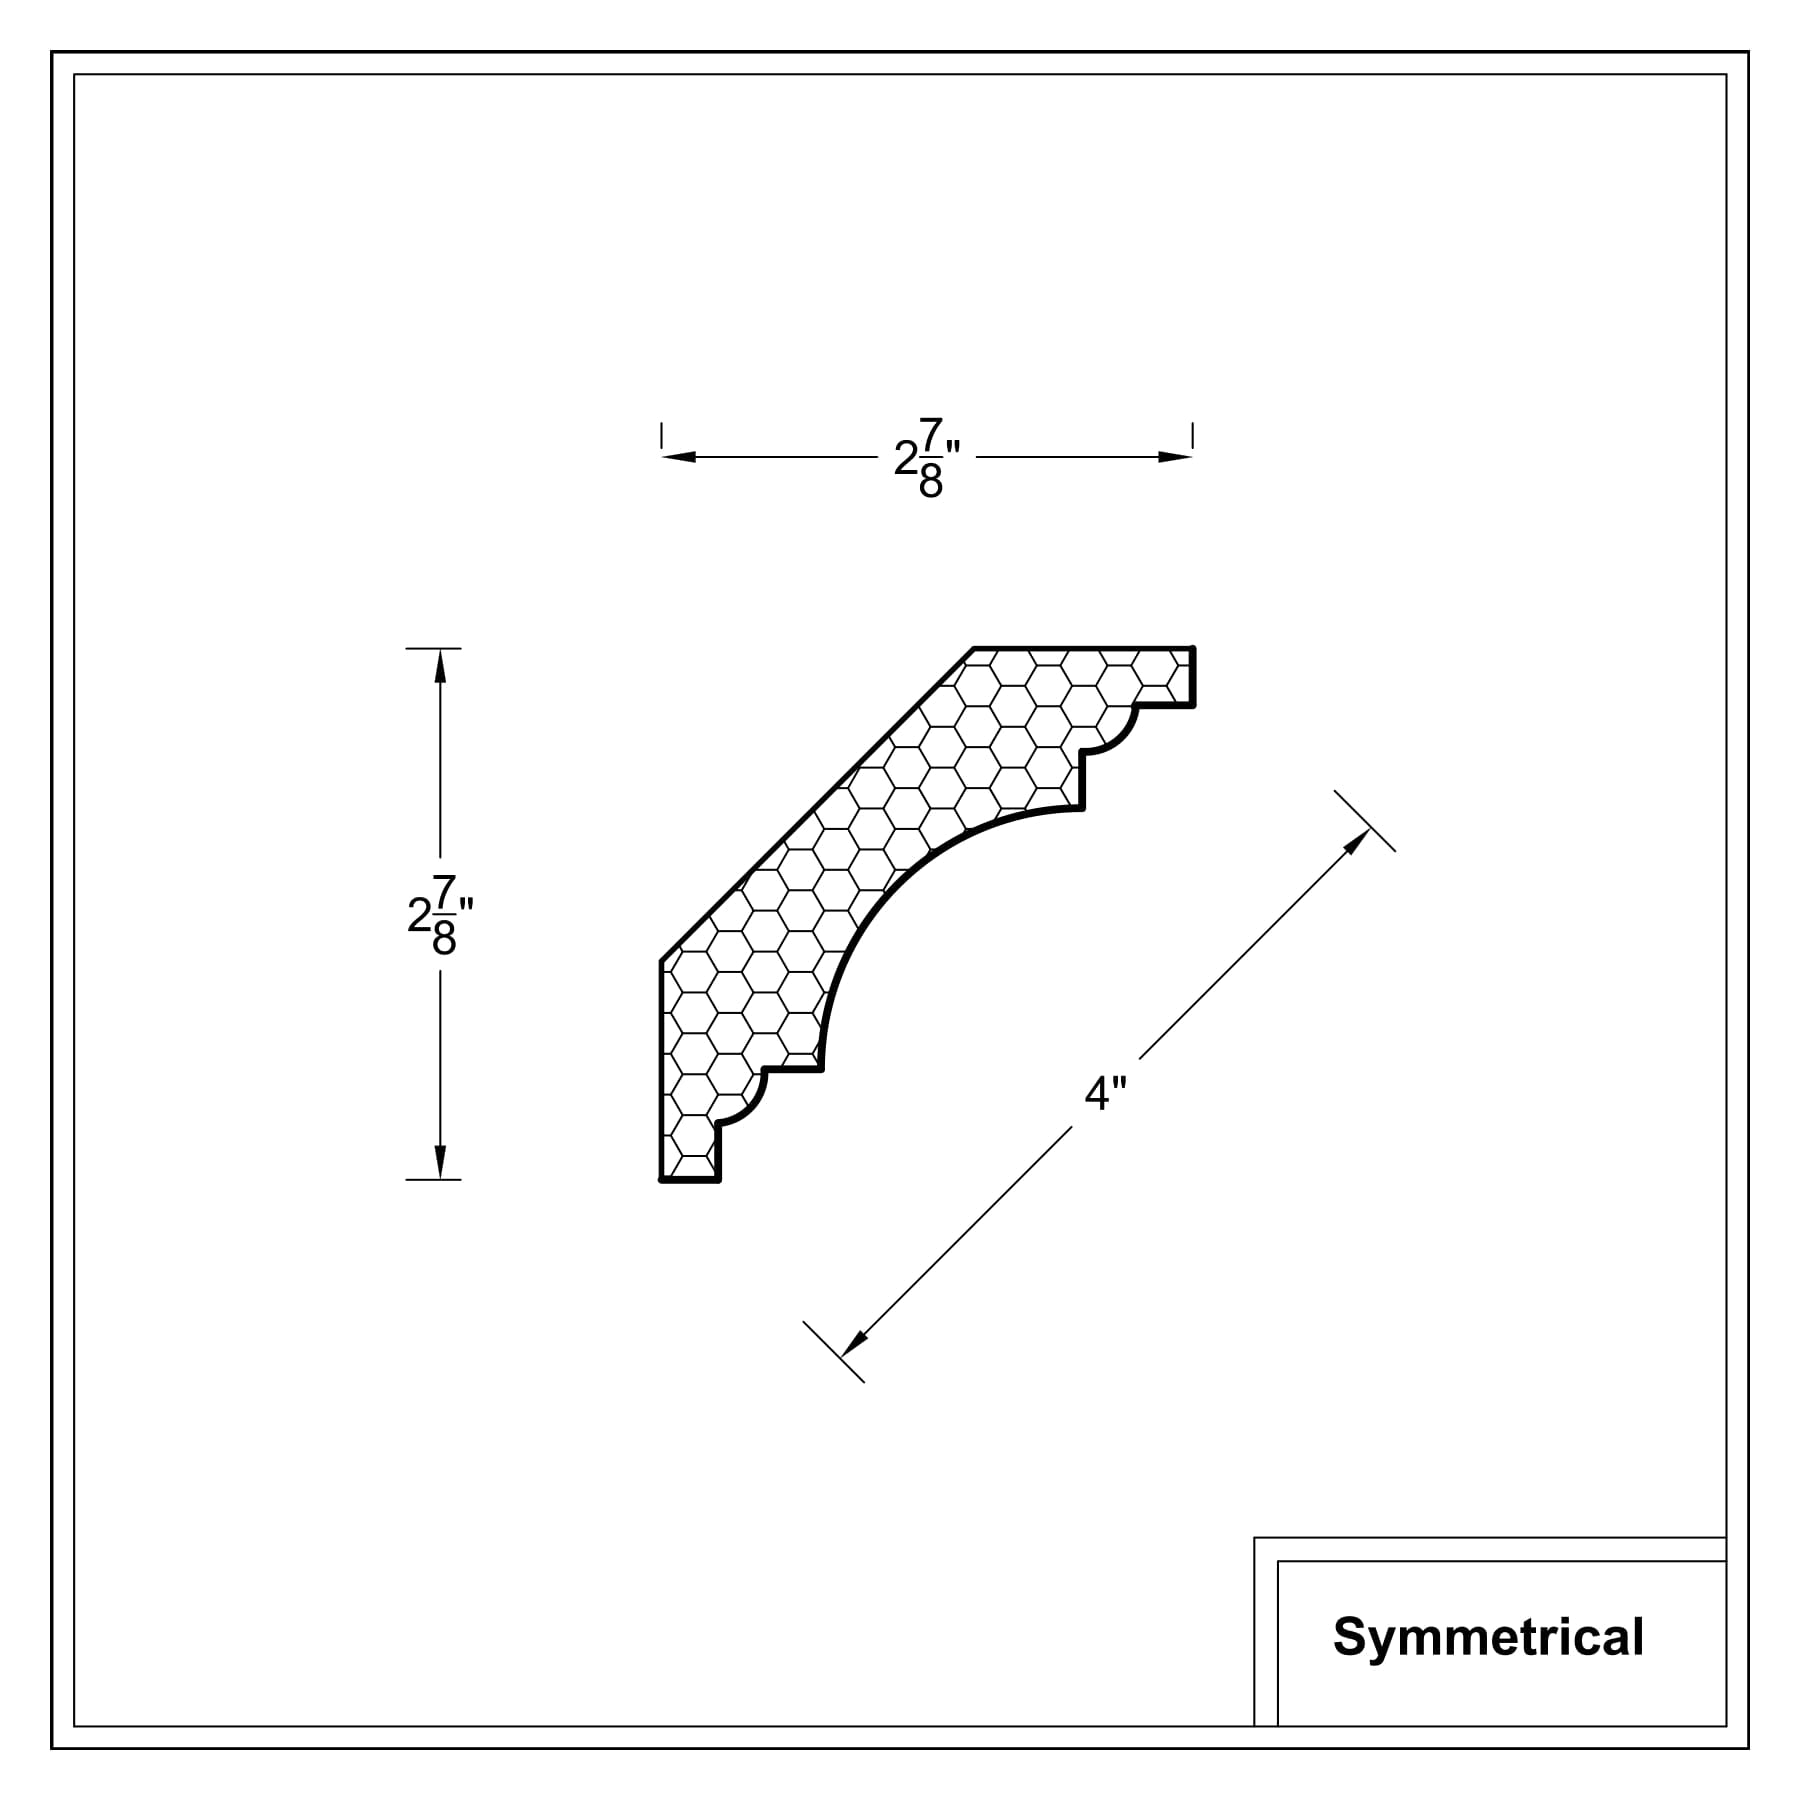 Crown moulding - Symmetrical Cross Sections